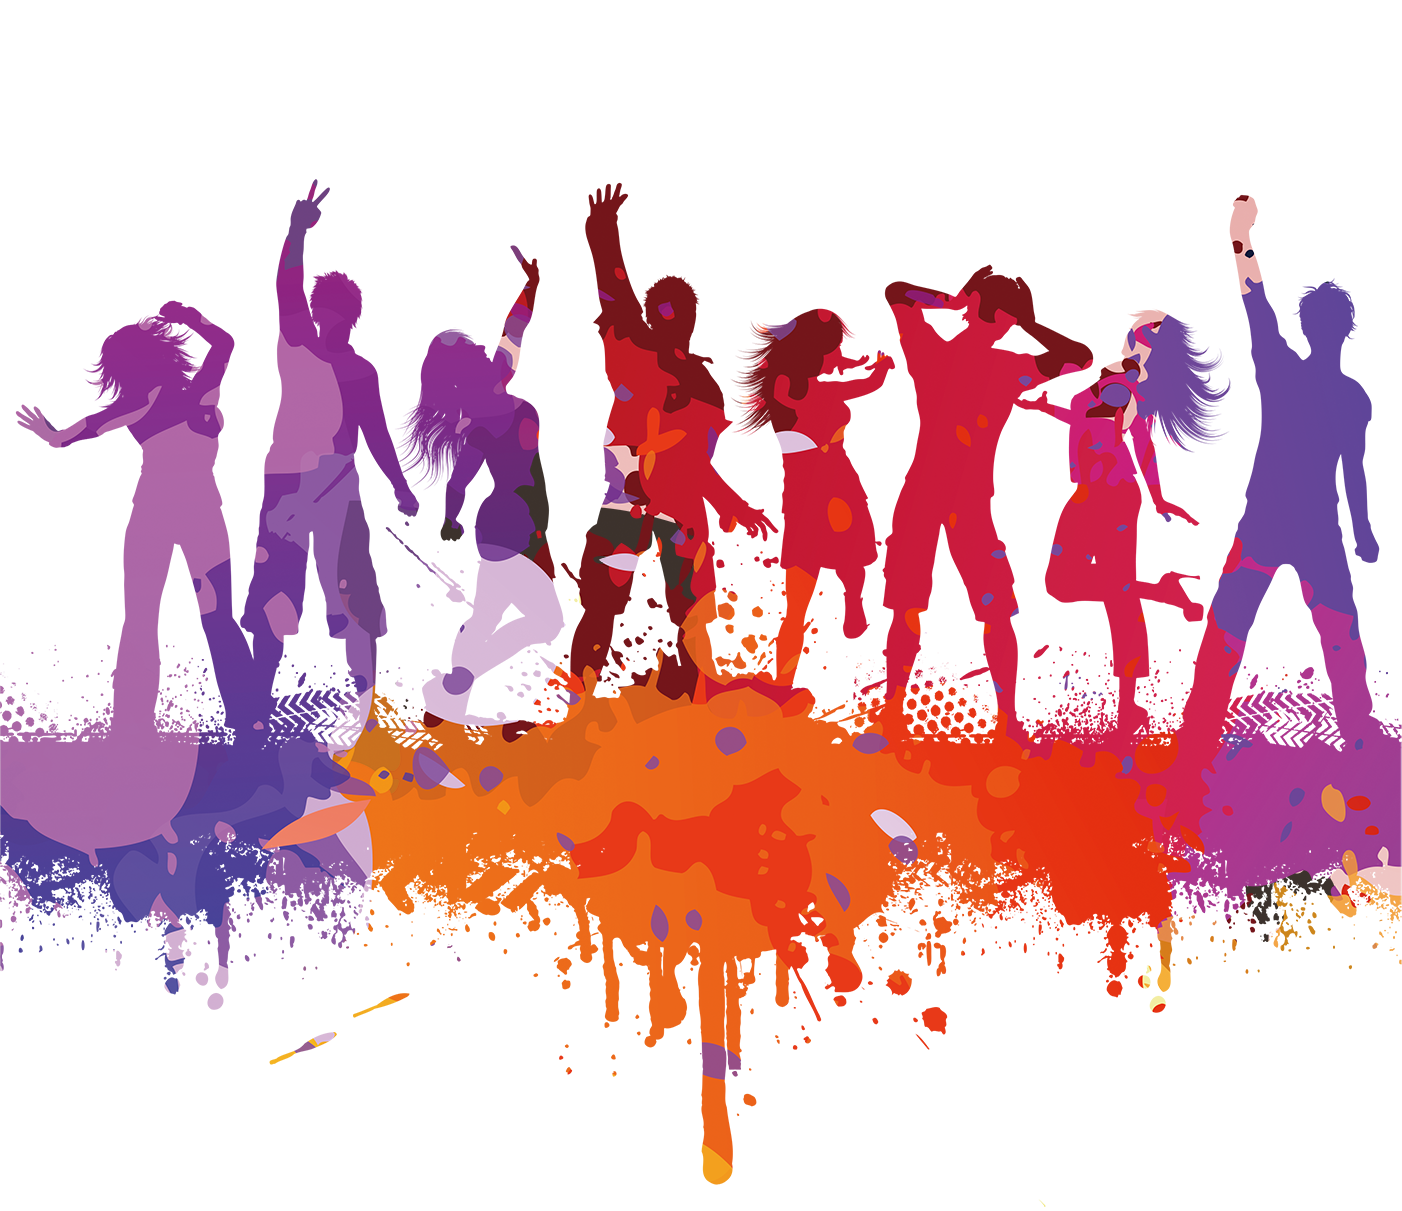 Party people dancing png. Dance silhouette color silhouettes